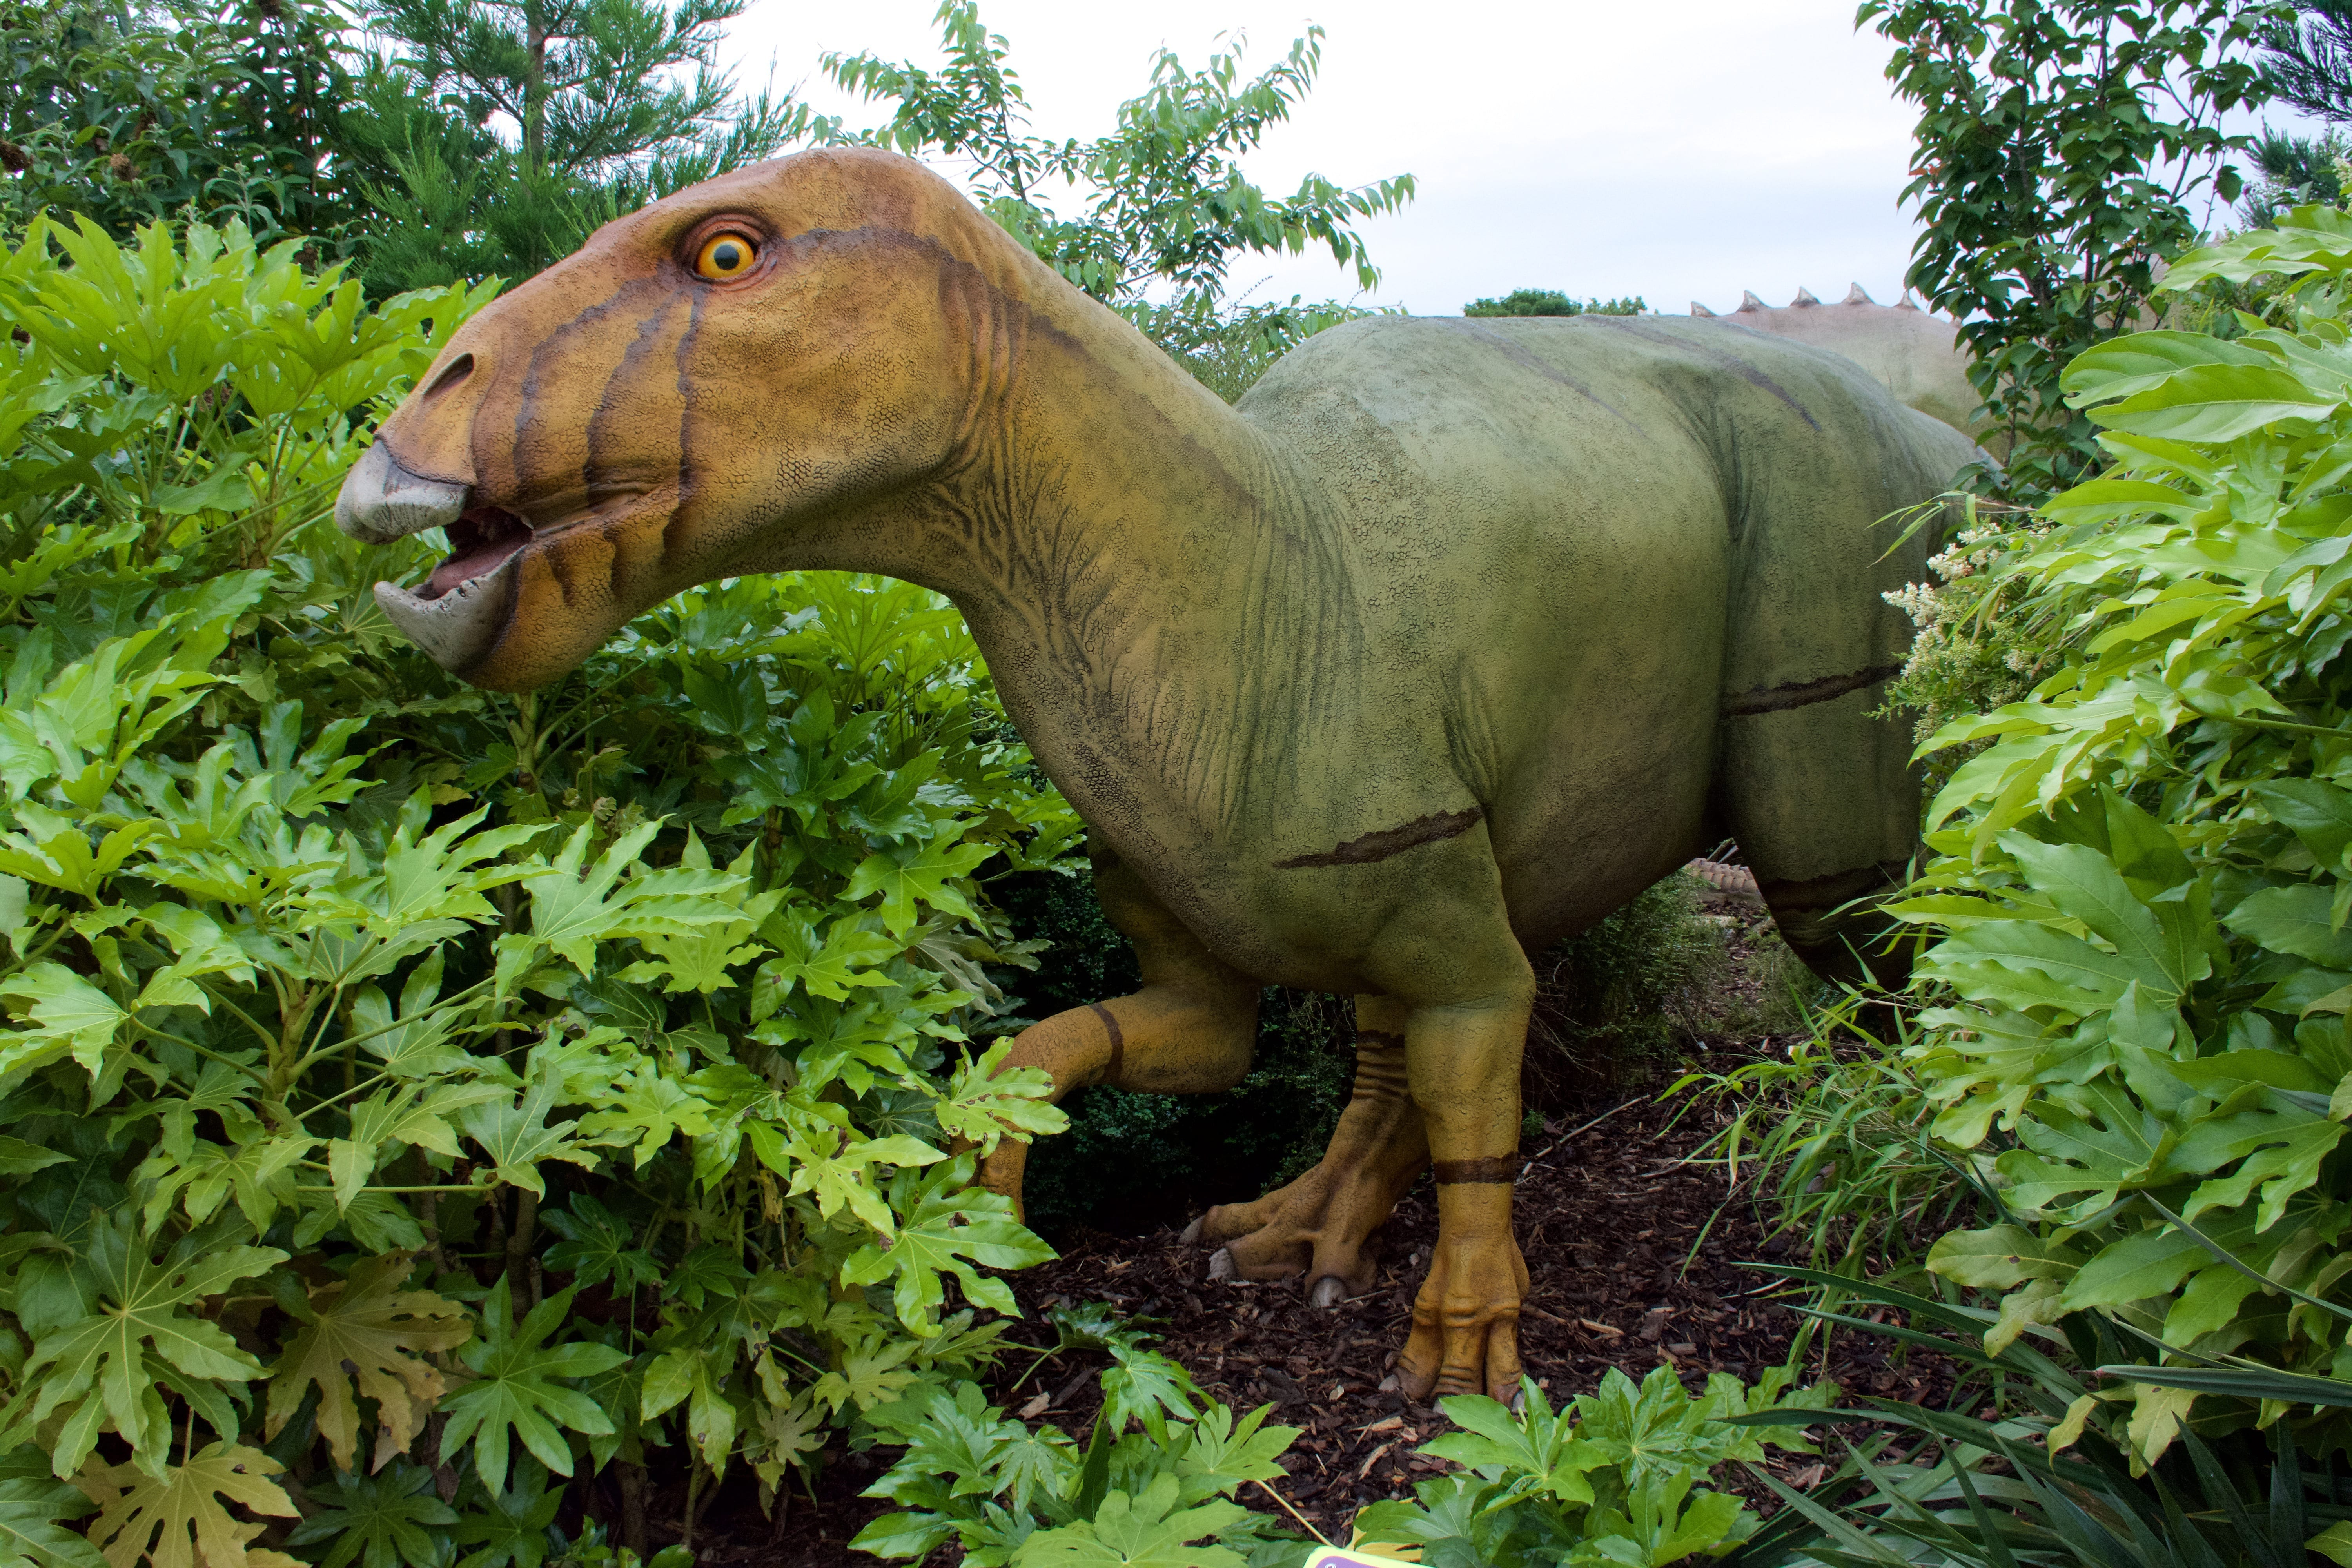 The Dinos Return with an Even Bigger Bite at Jurassic Gardens!